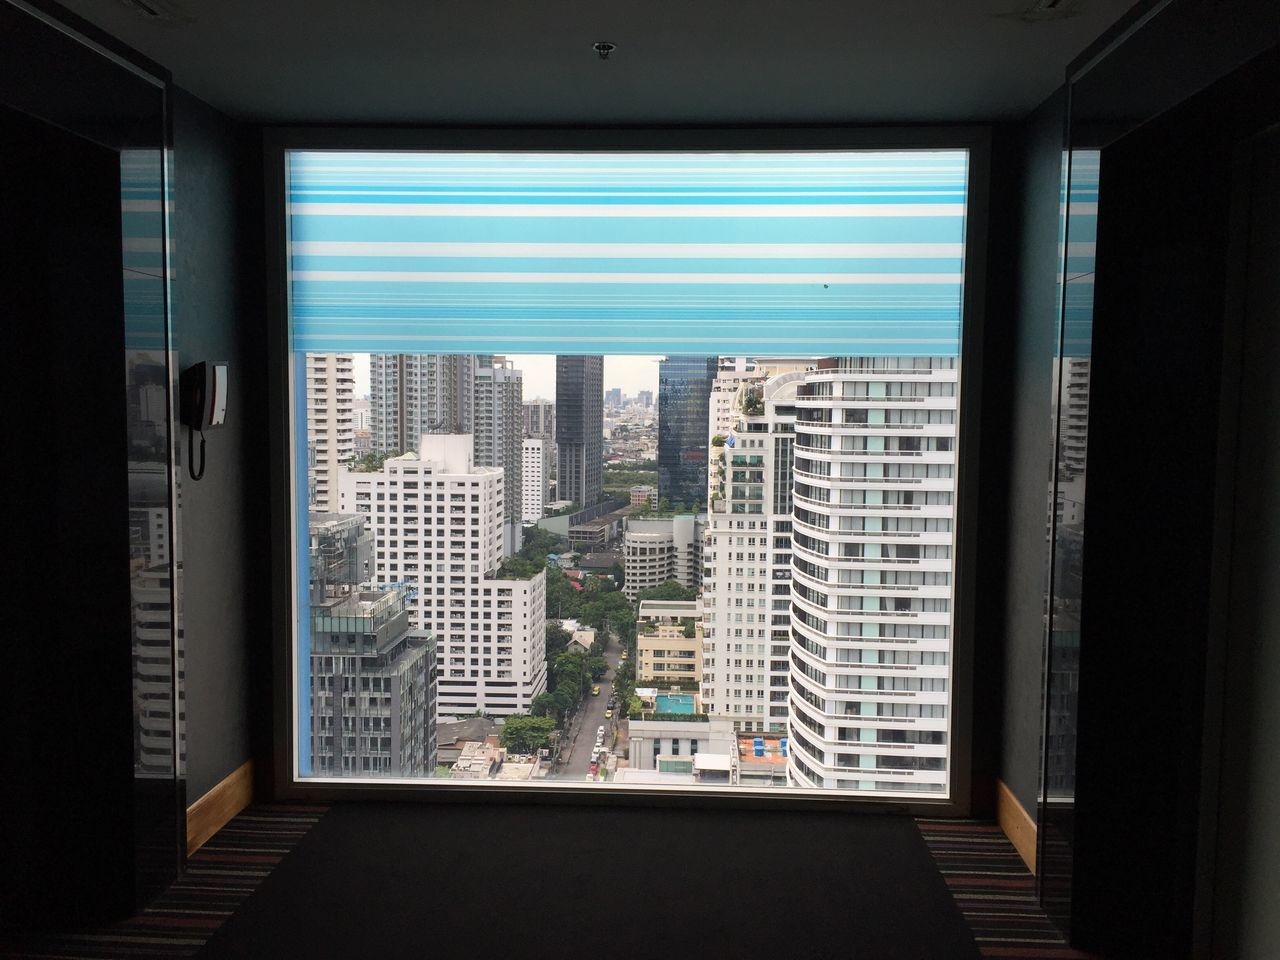 window, architecture, indoors, skyscraper, built structure, building exterior, day, city, no people, cityscape